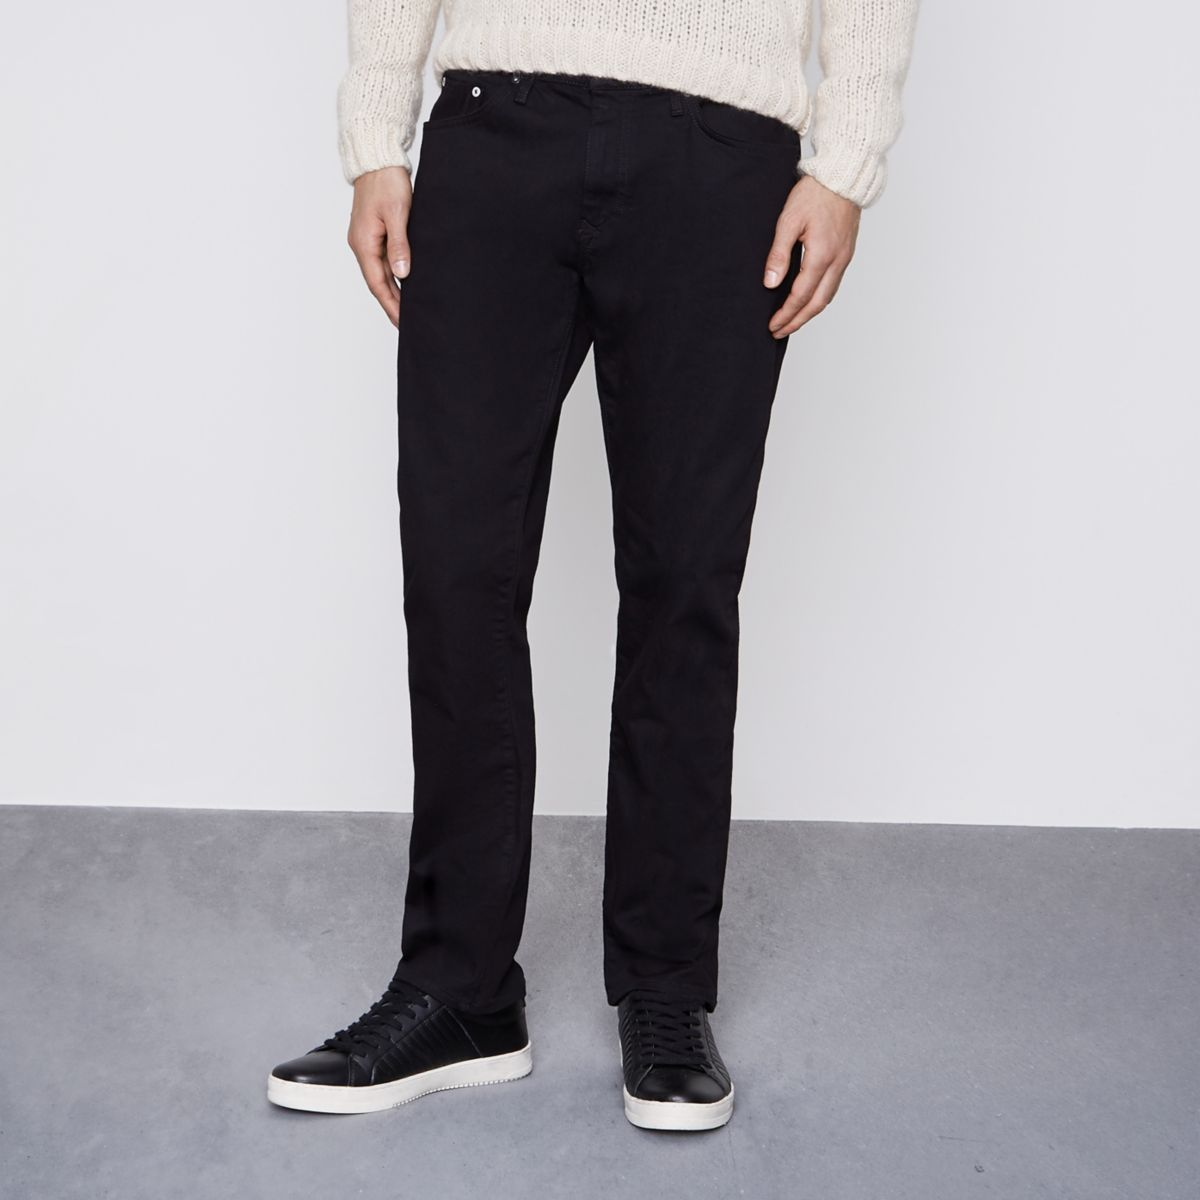 River Island Ripped Jeans Mens